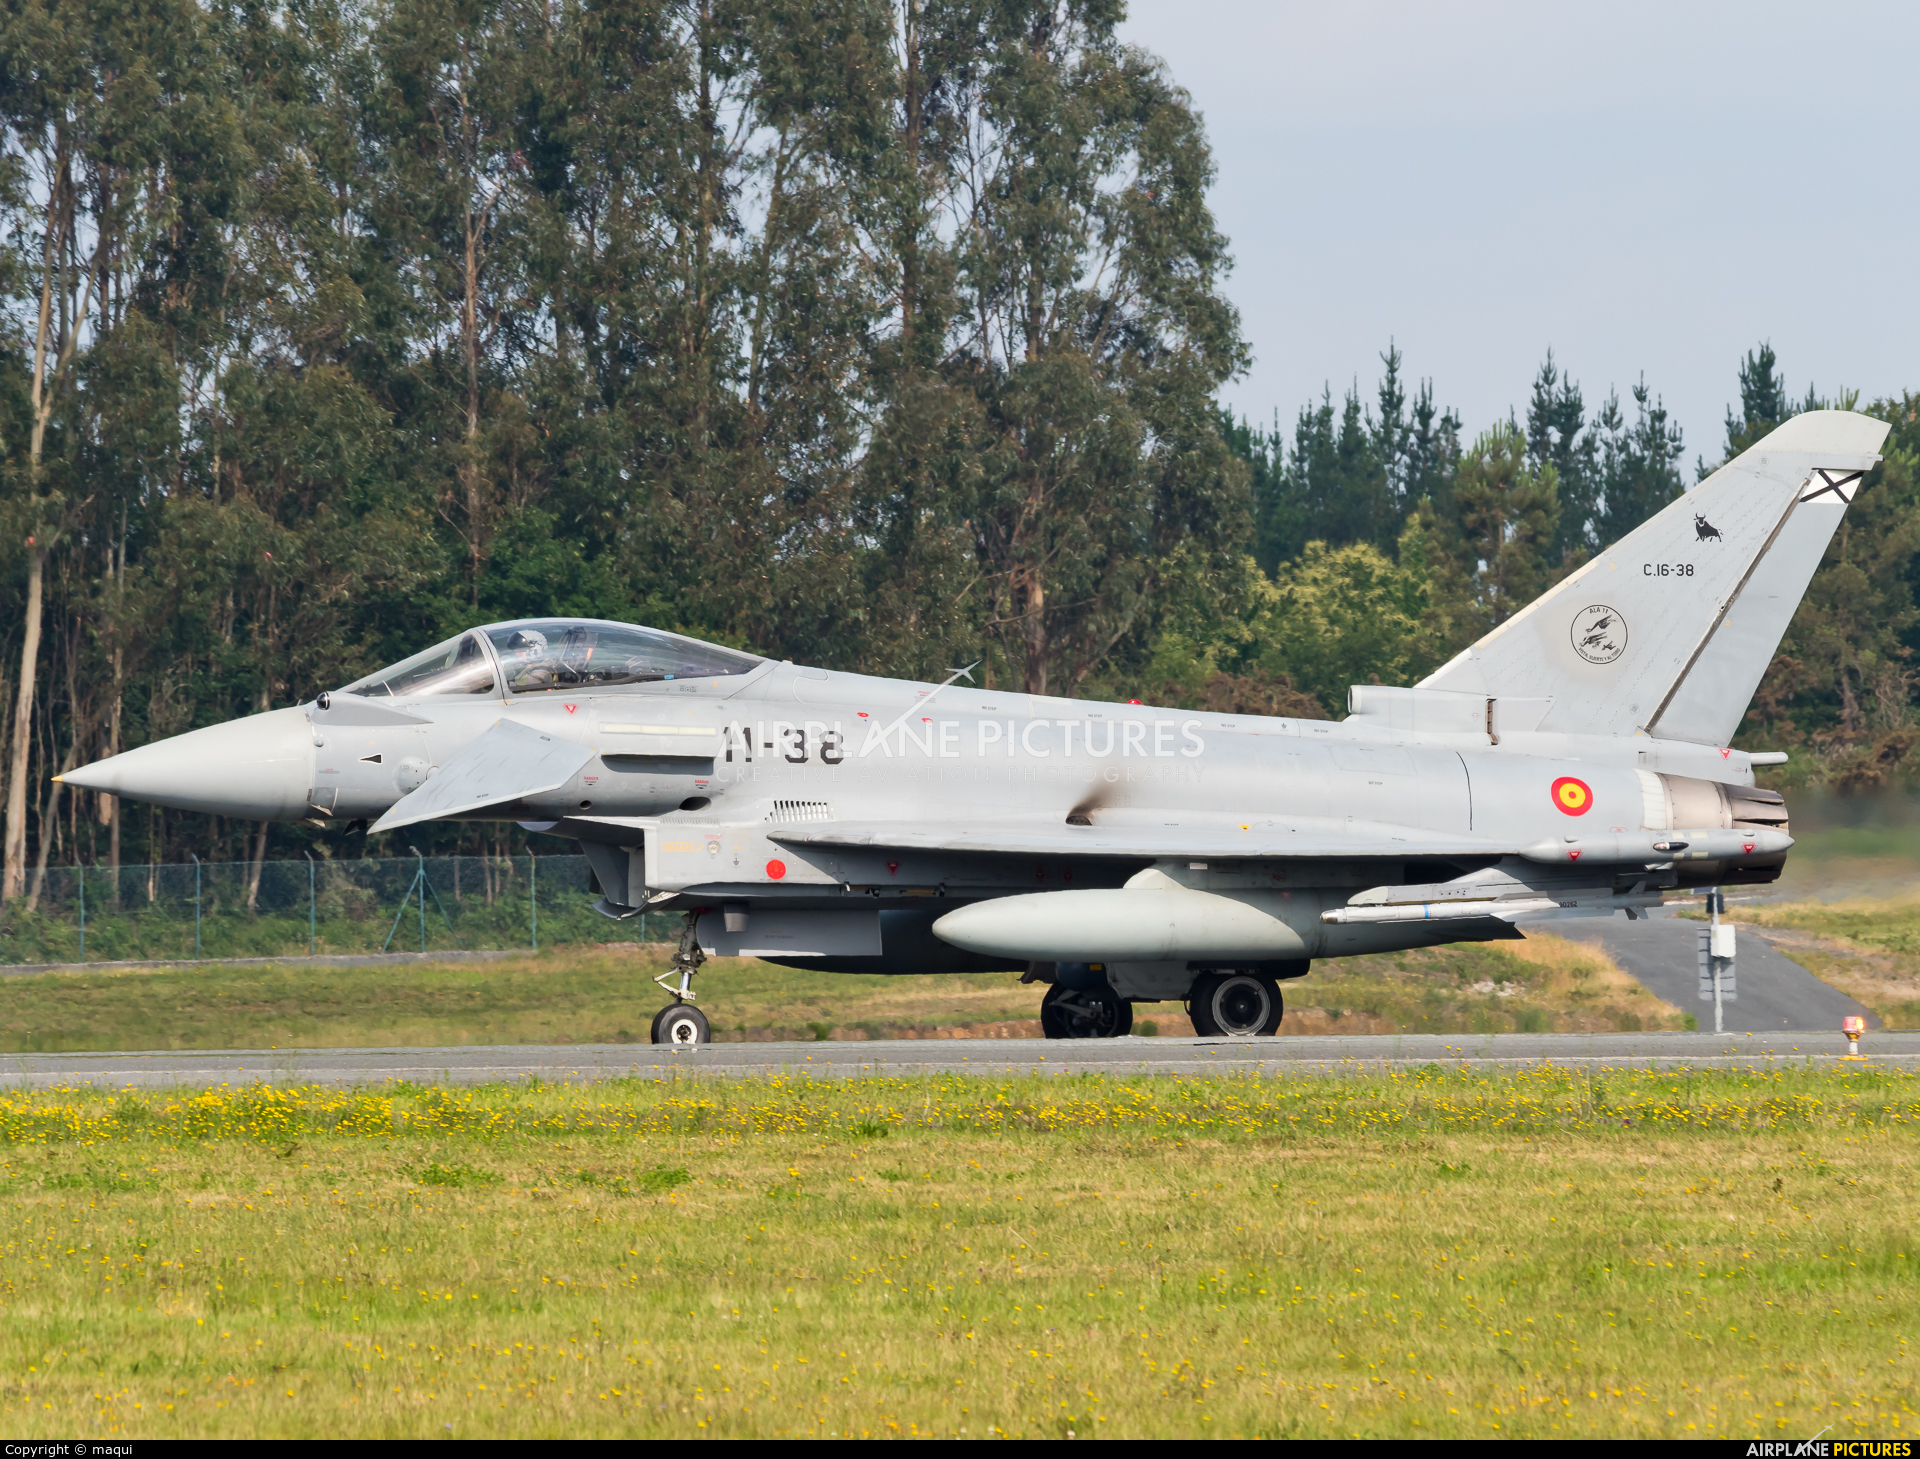 Spain - Air Force C.16-38 aircraft at Santiago de Compostela